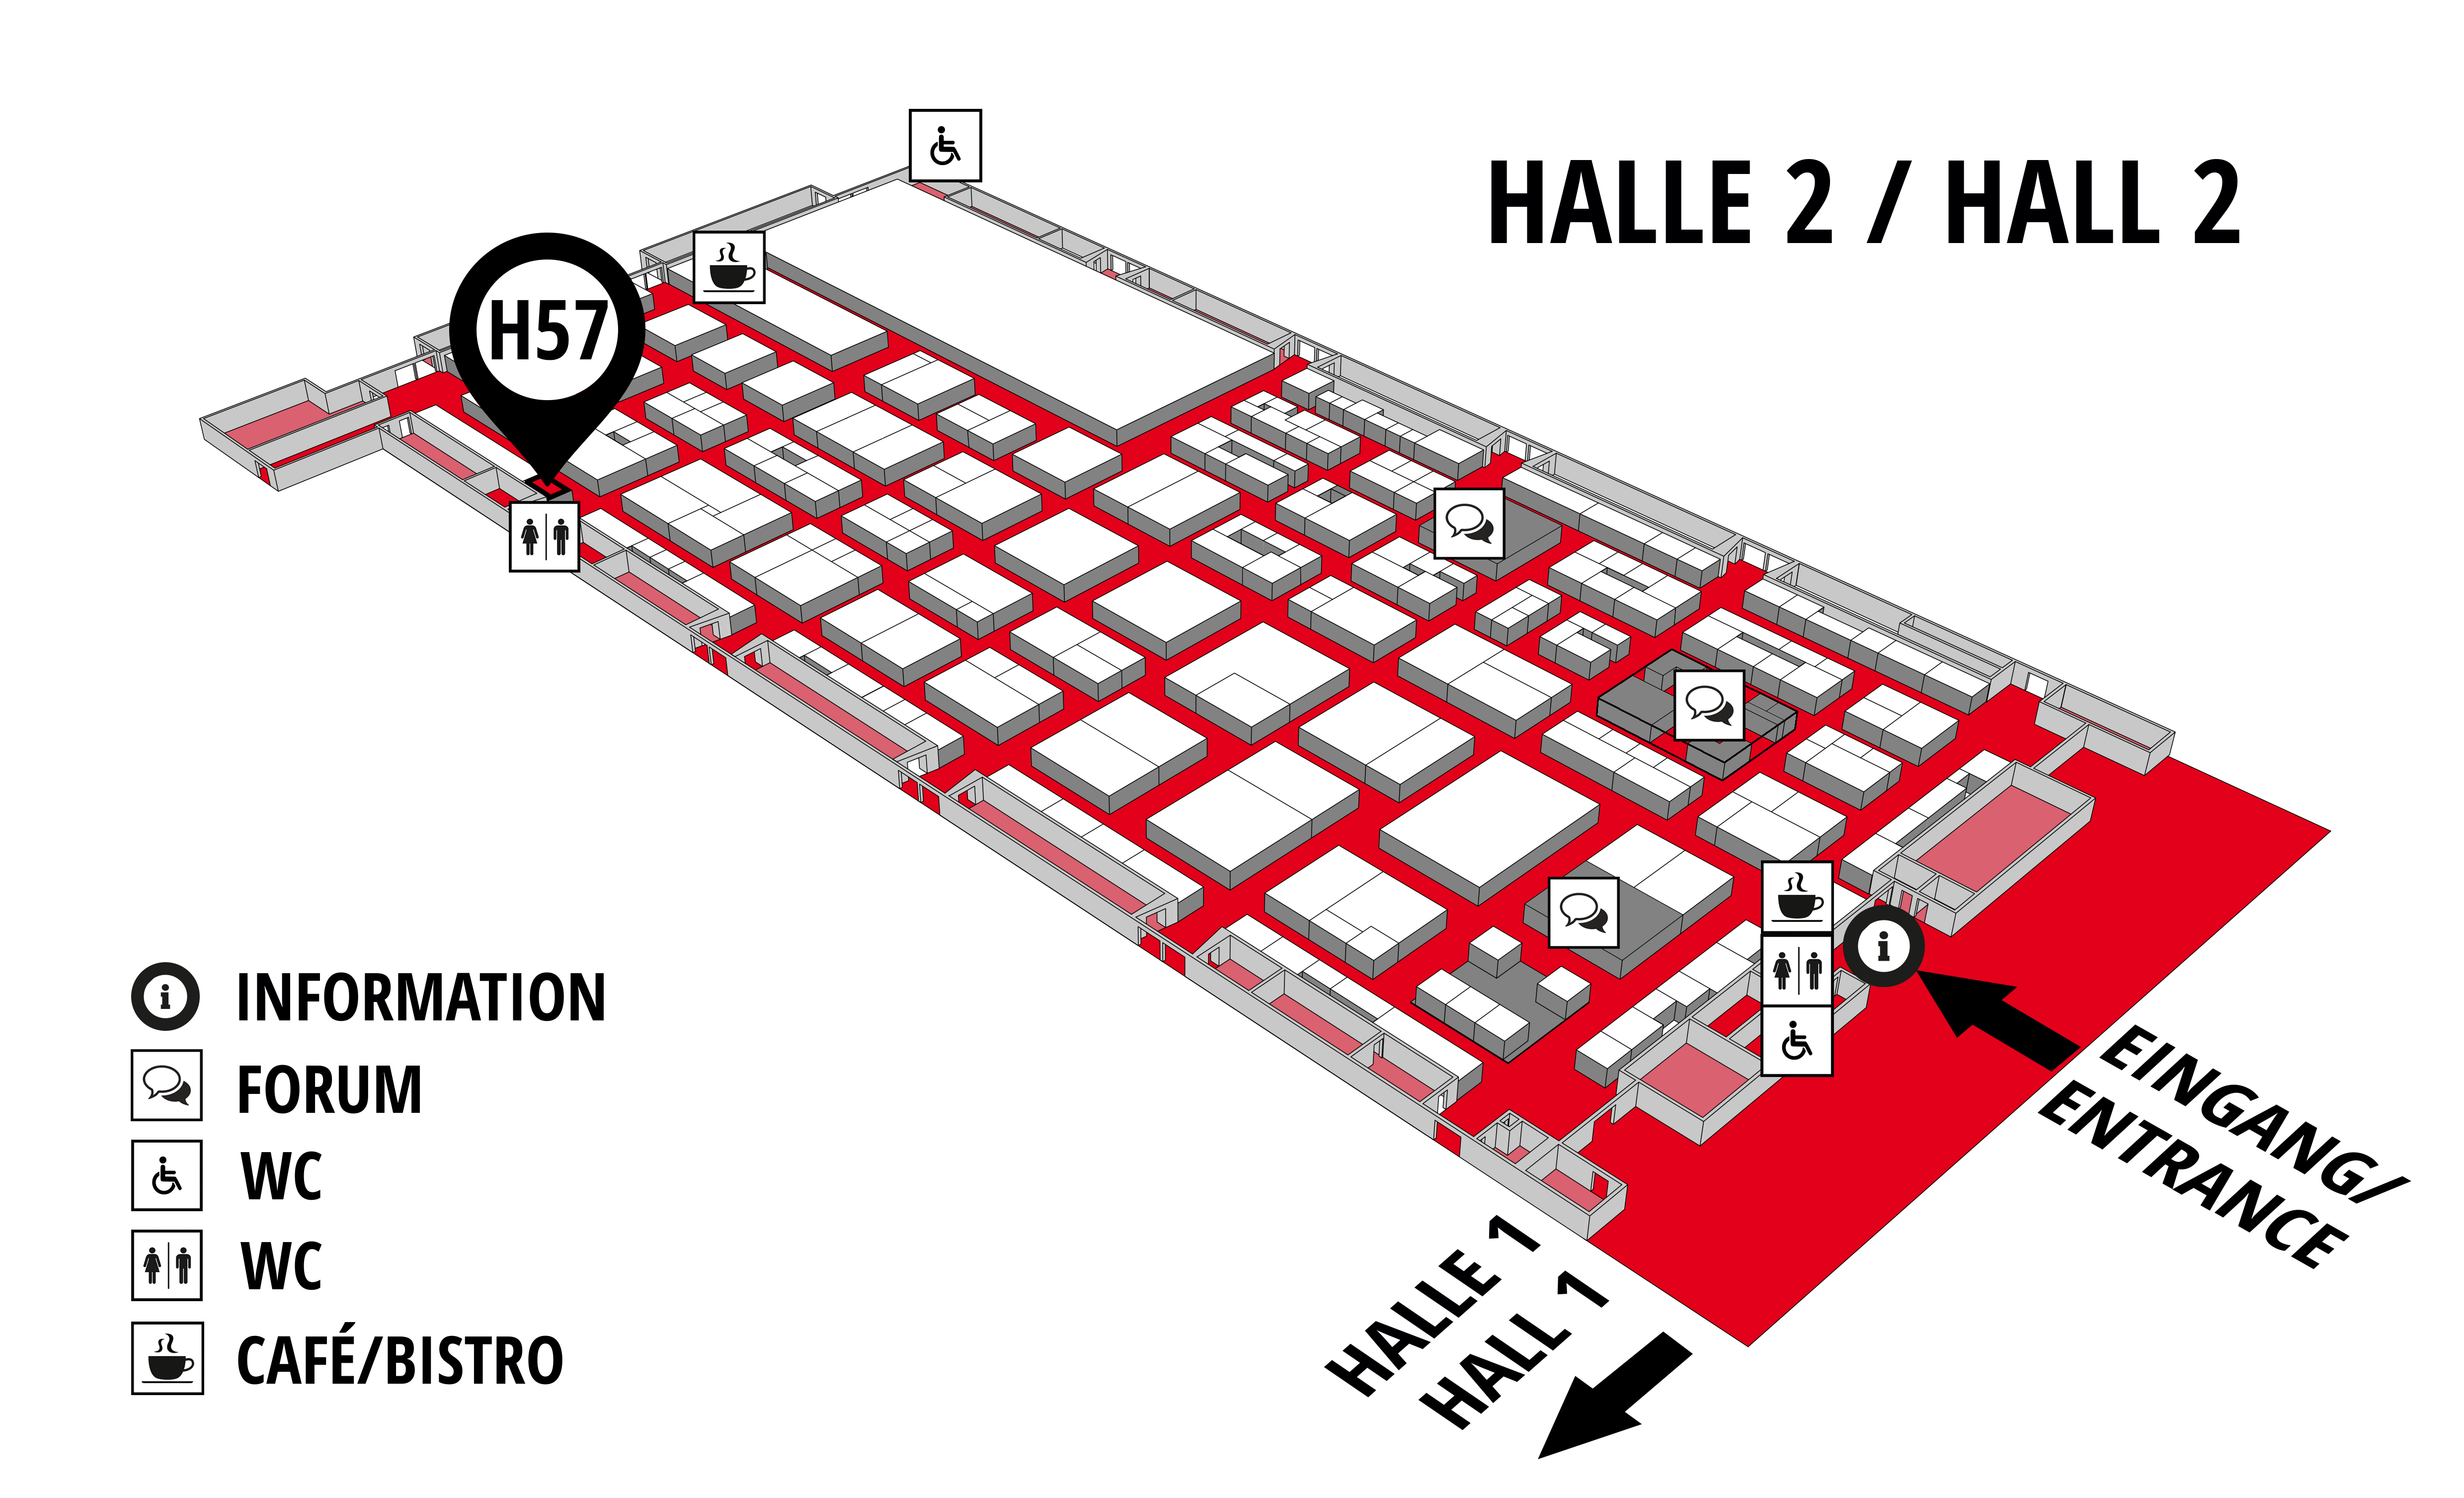 REHAB - Rehabilitation | Therapy | Care | Inclusion hall map (Hall 2): stand H57